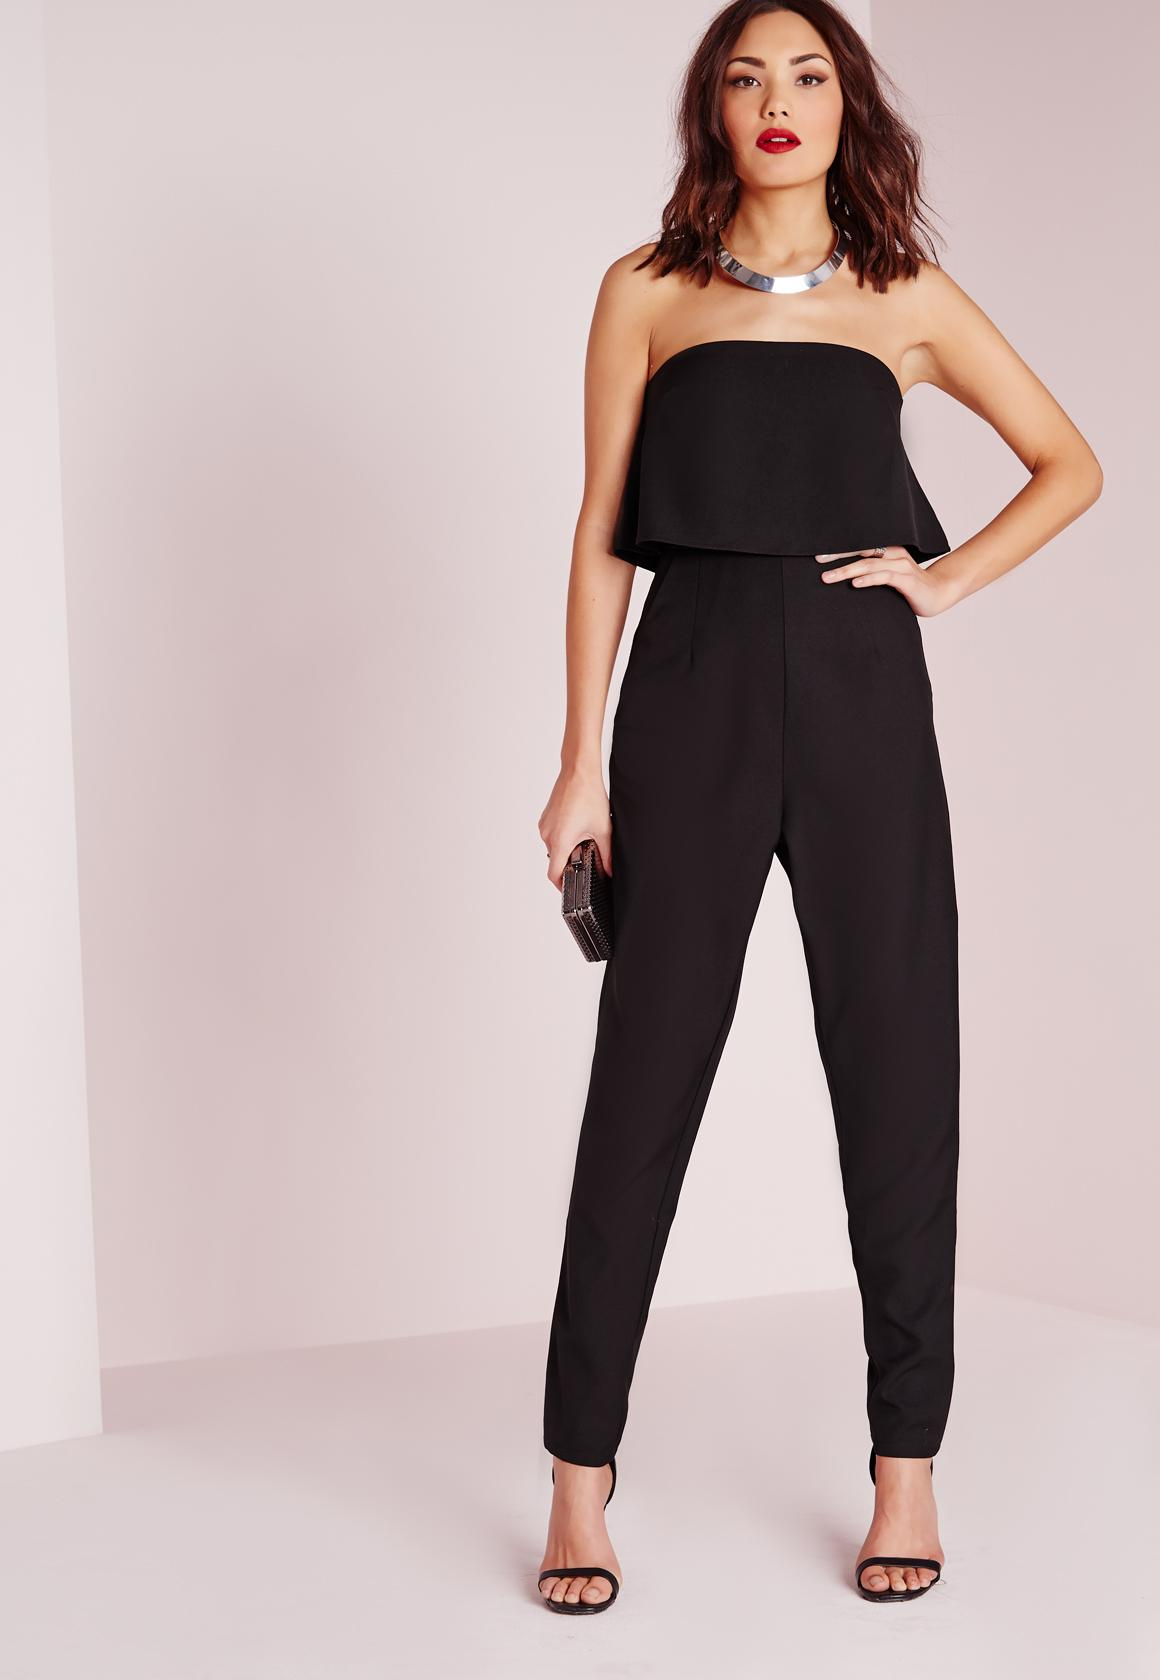 Double Layer Bandeau Jumpsuit Black - Jumpsuits - Bandeau ...